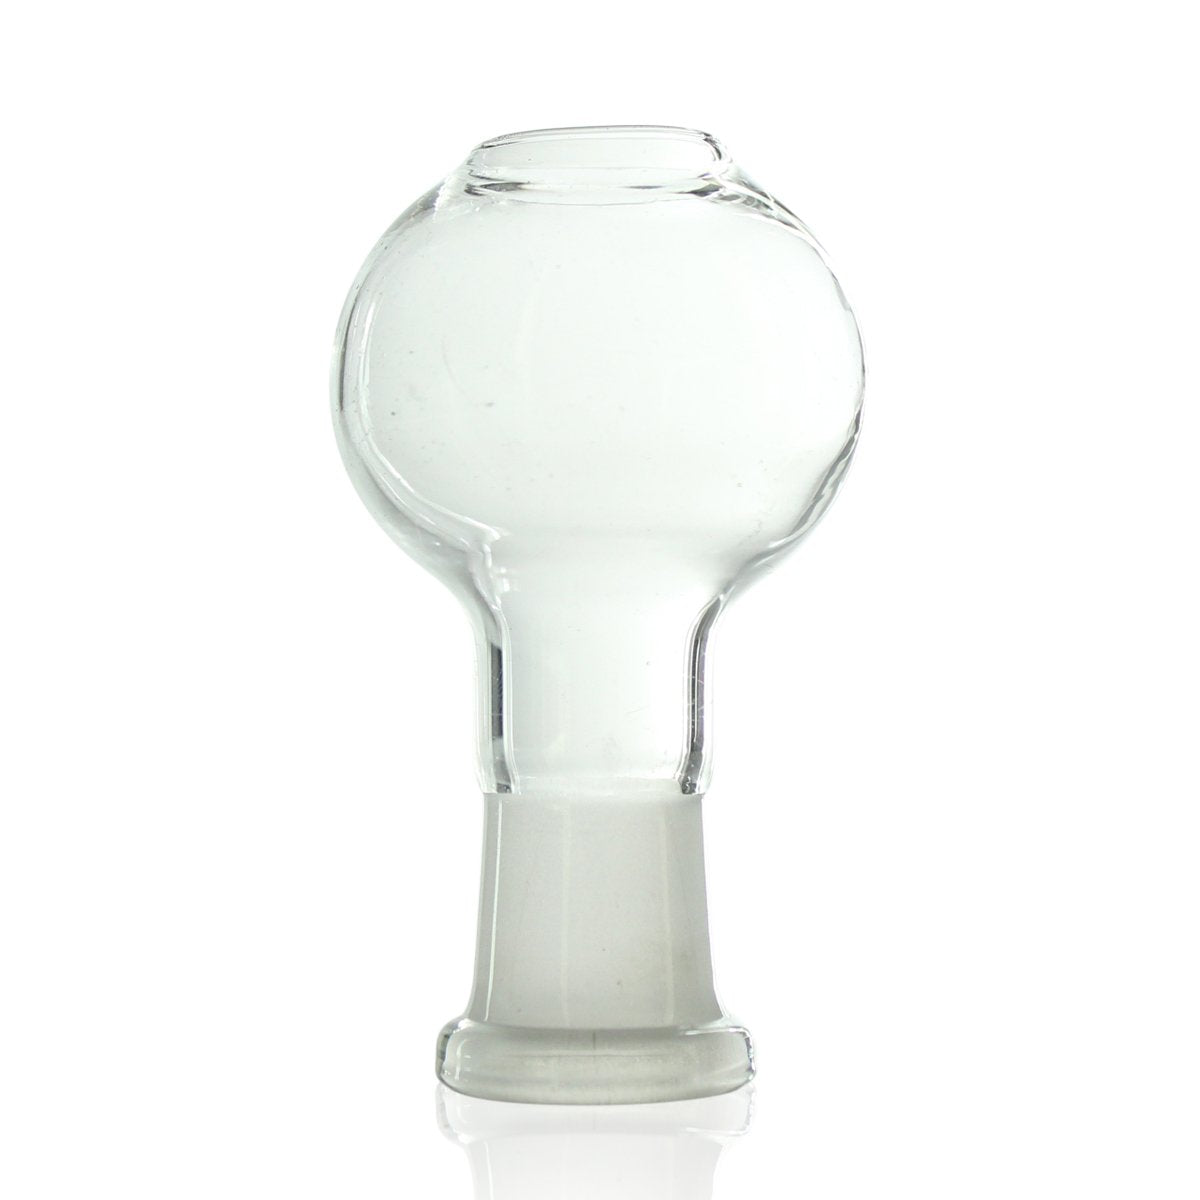 Concentrate Dome 14mm - 360 Alternative